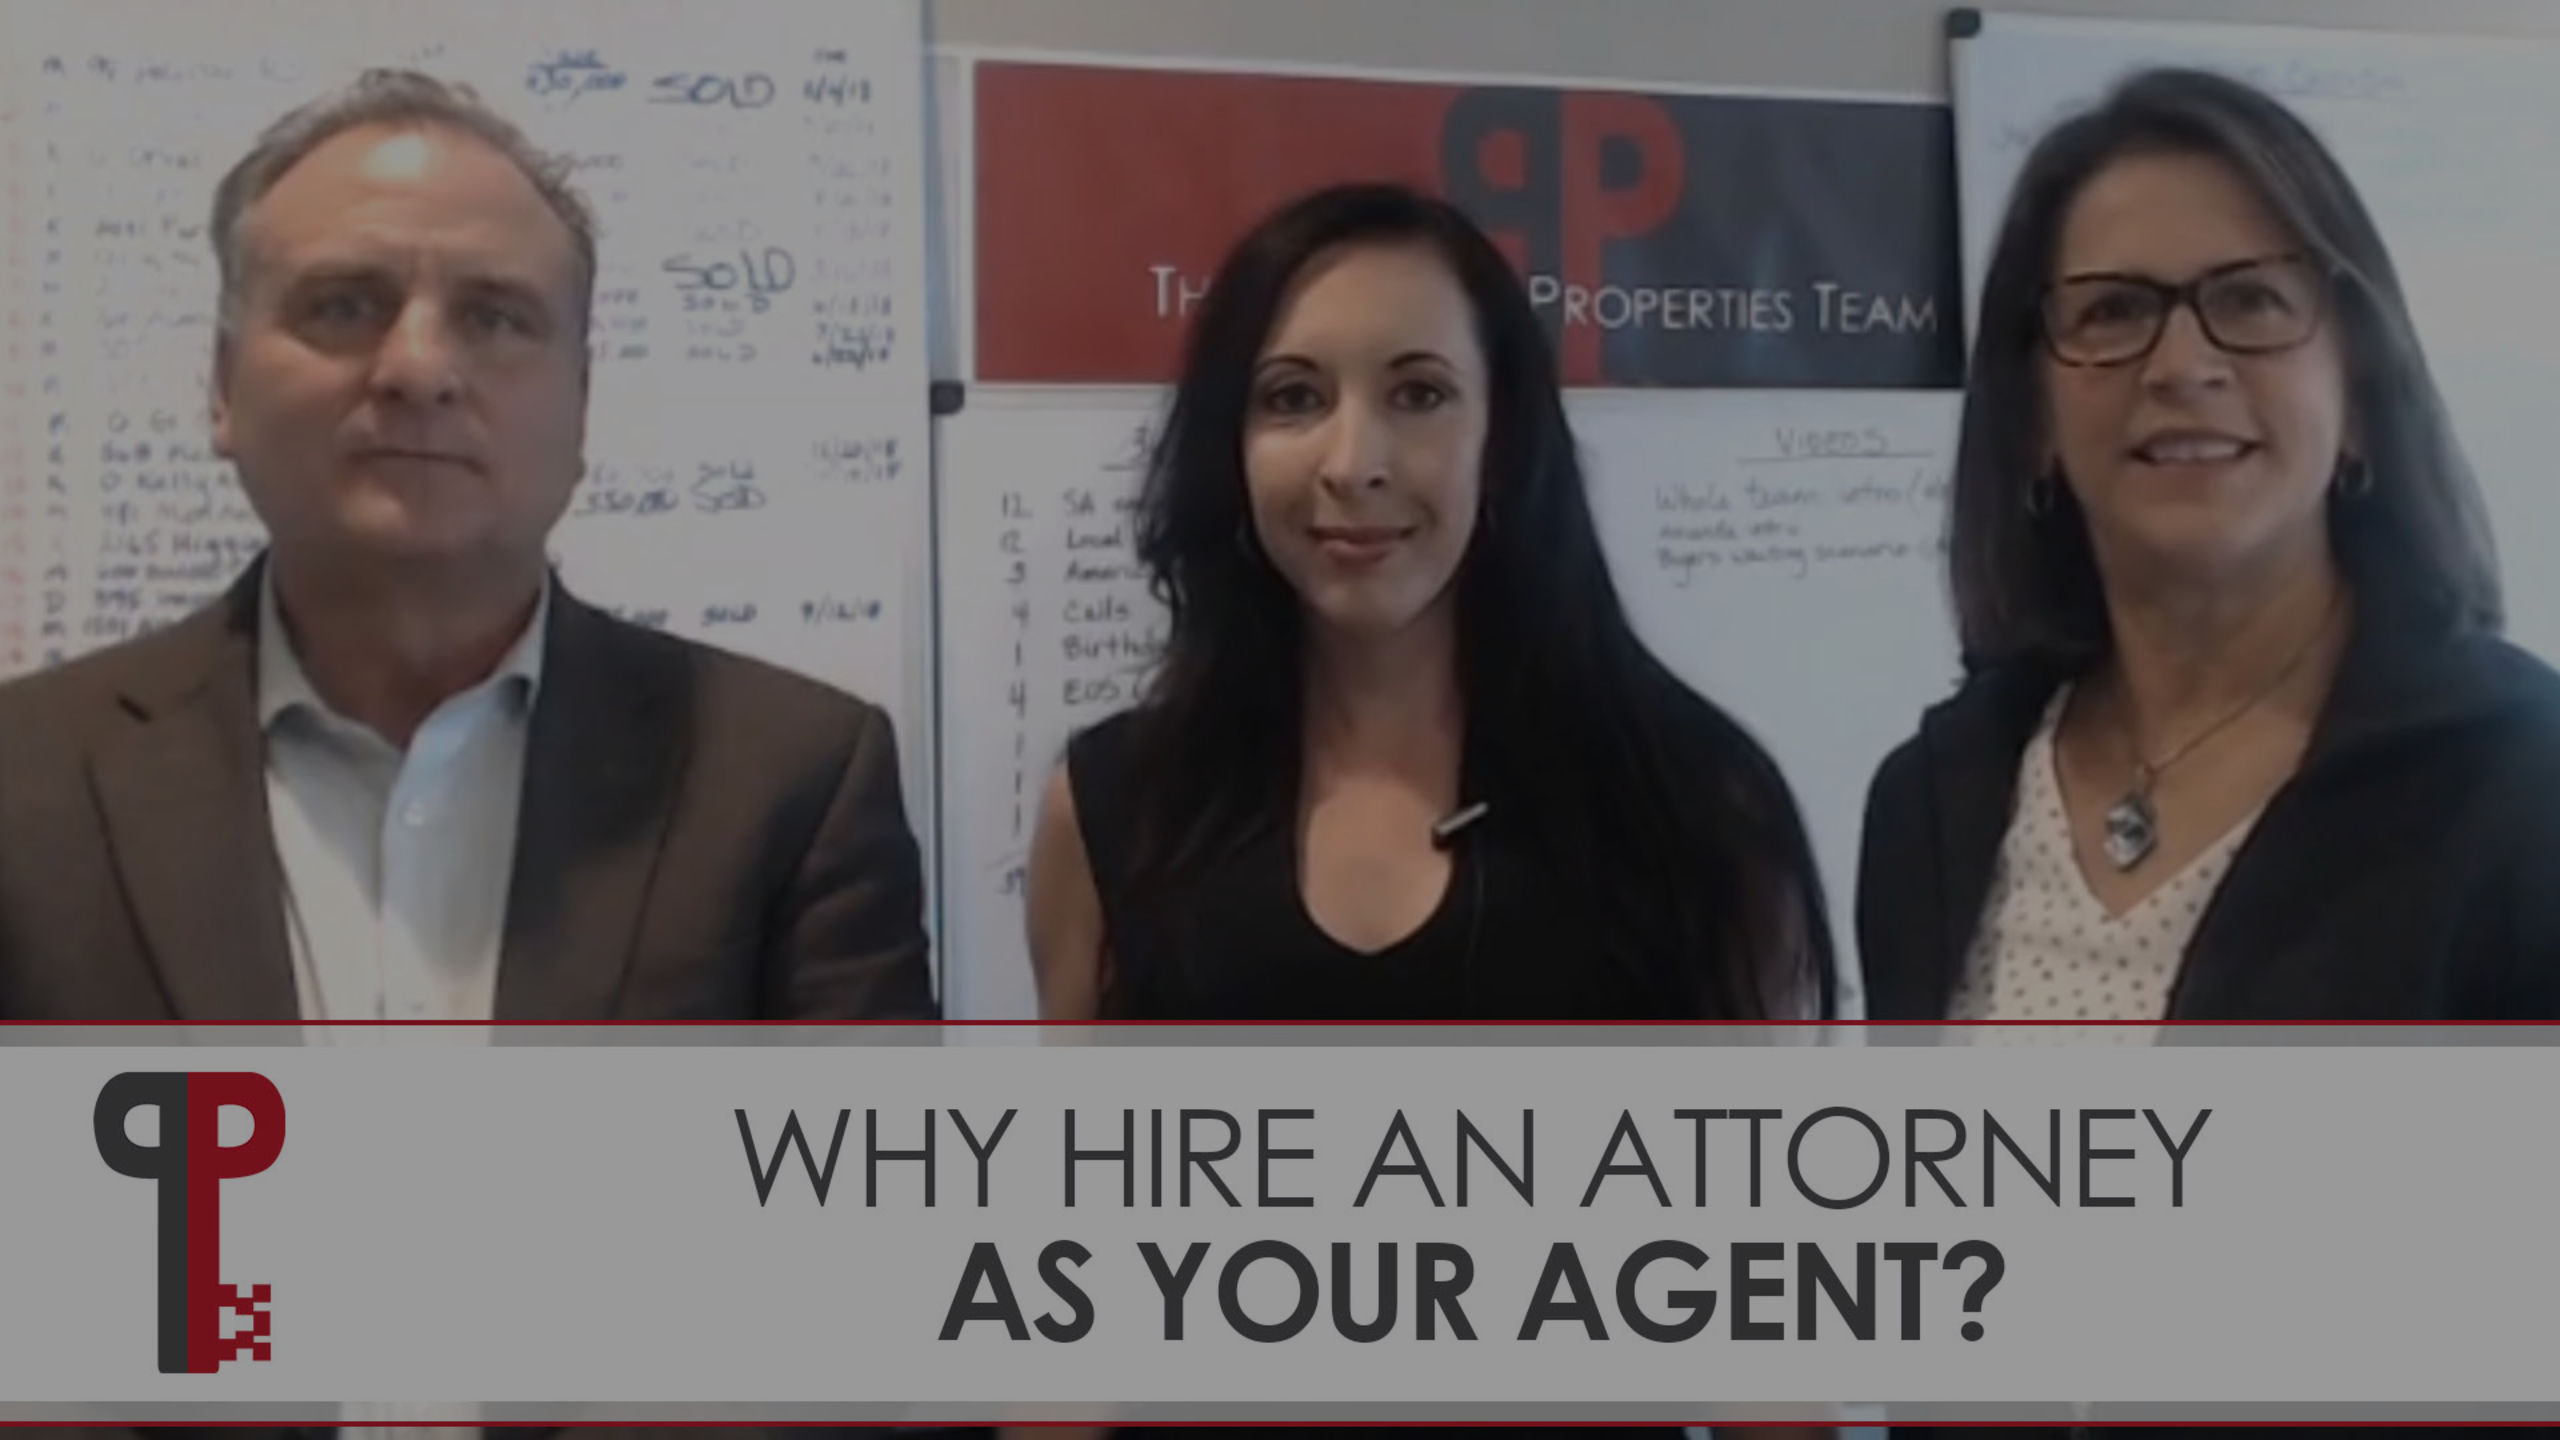 The Benefits of Hiring an Attorney to Buy or Sell Your Home